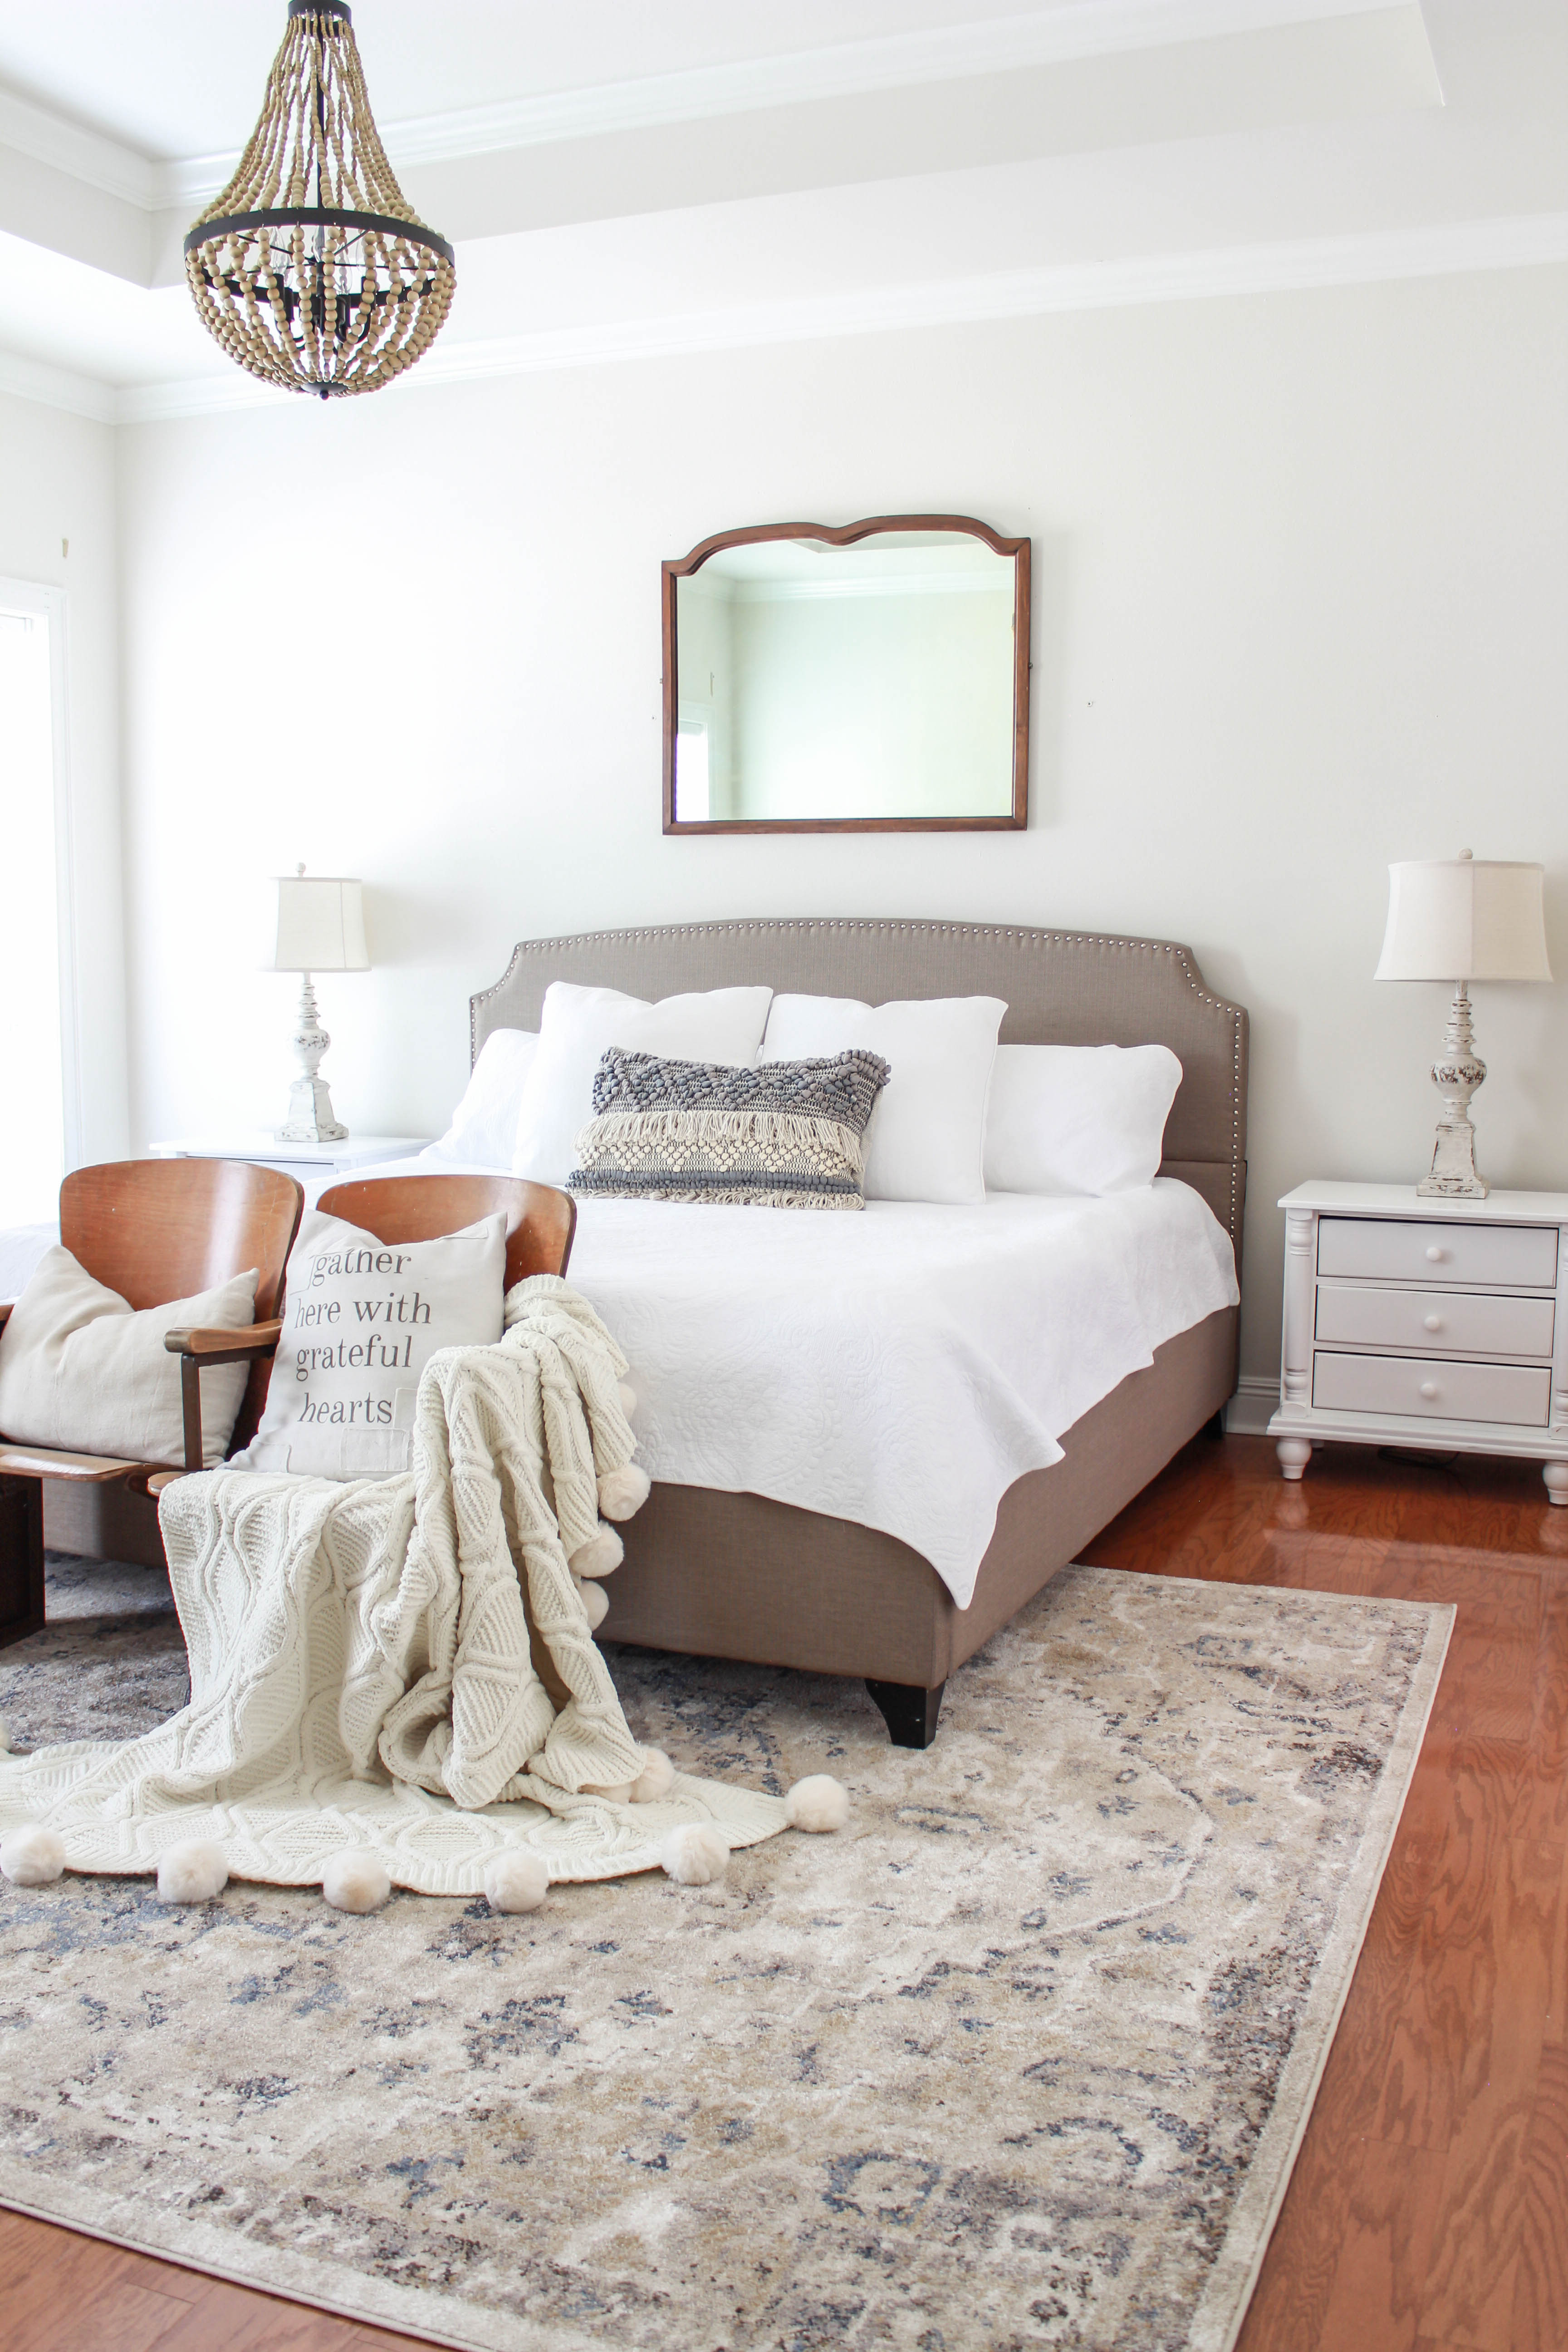 See how I did a bedroom makeover with a few easy and budget friendly changes. I went with a vintage-inspired minimalist look for this makeover.